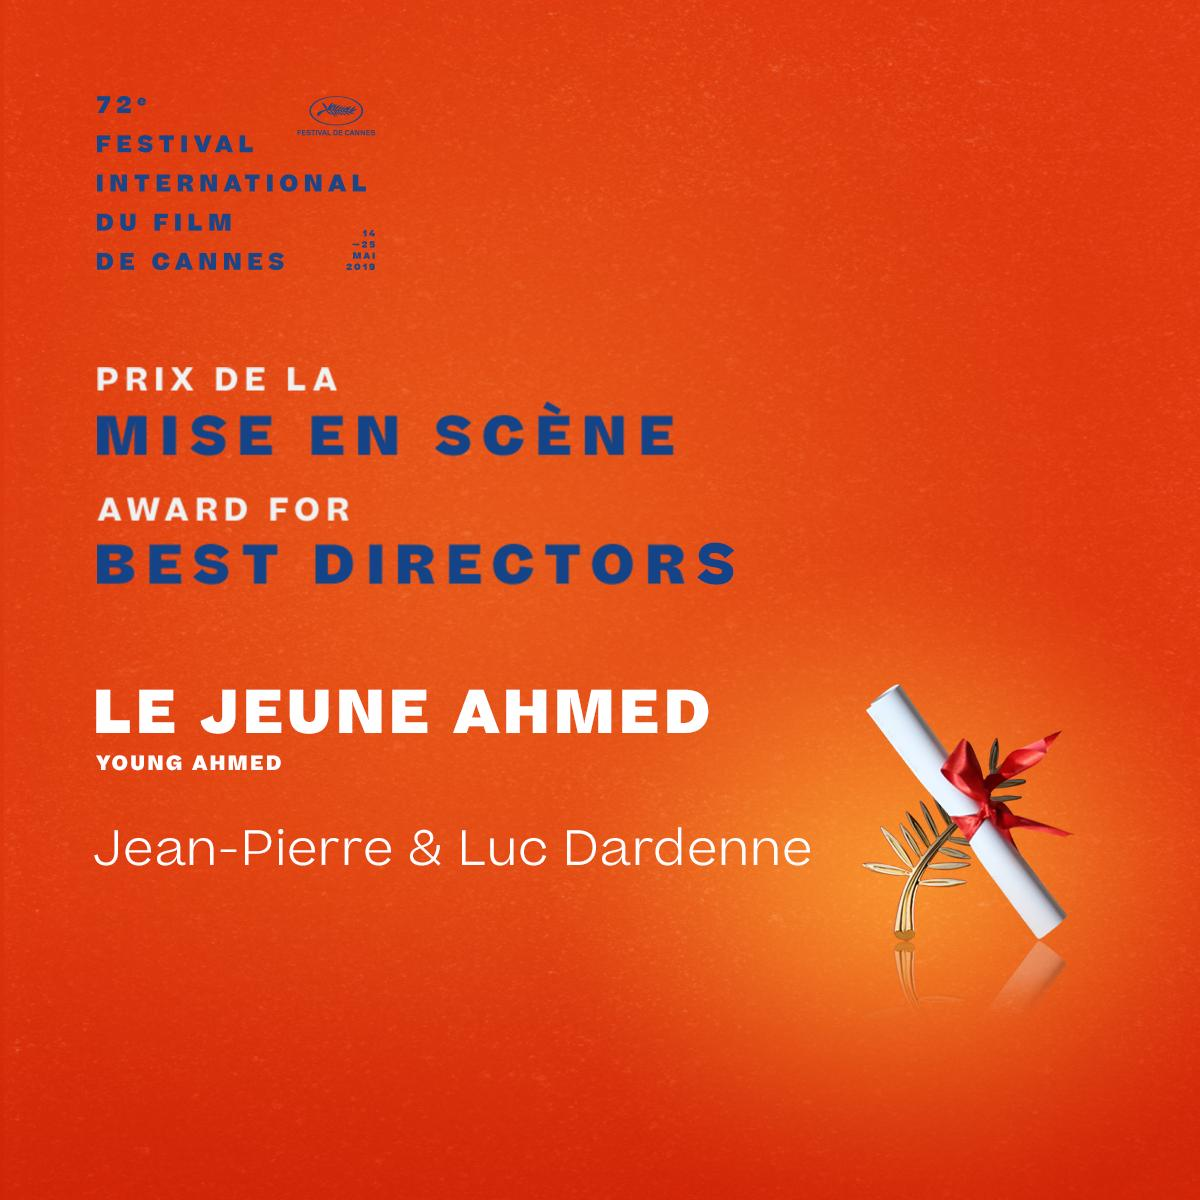 The Award for Best Directors goes to… #LeJeuneAhmed by Jean-Pierre & Luc Dardenne  #Cannes2019 #Awards